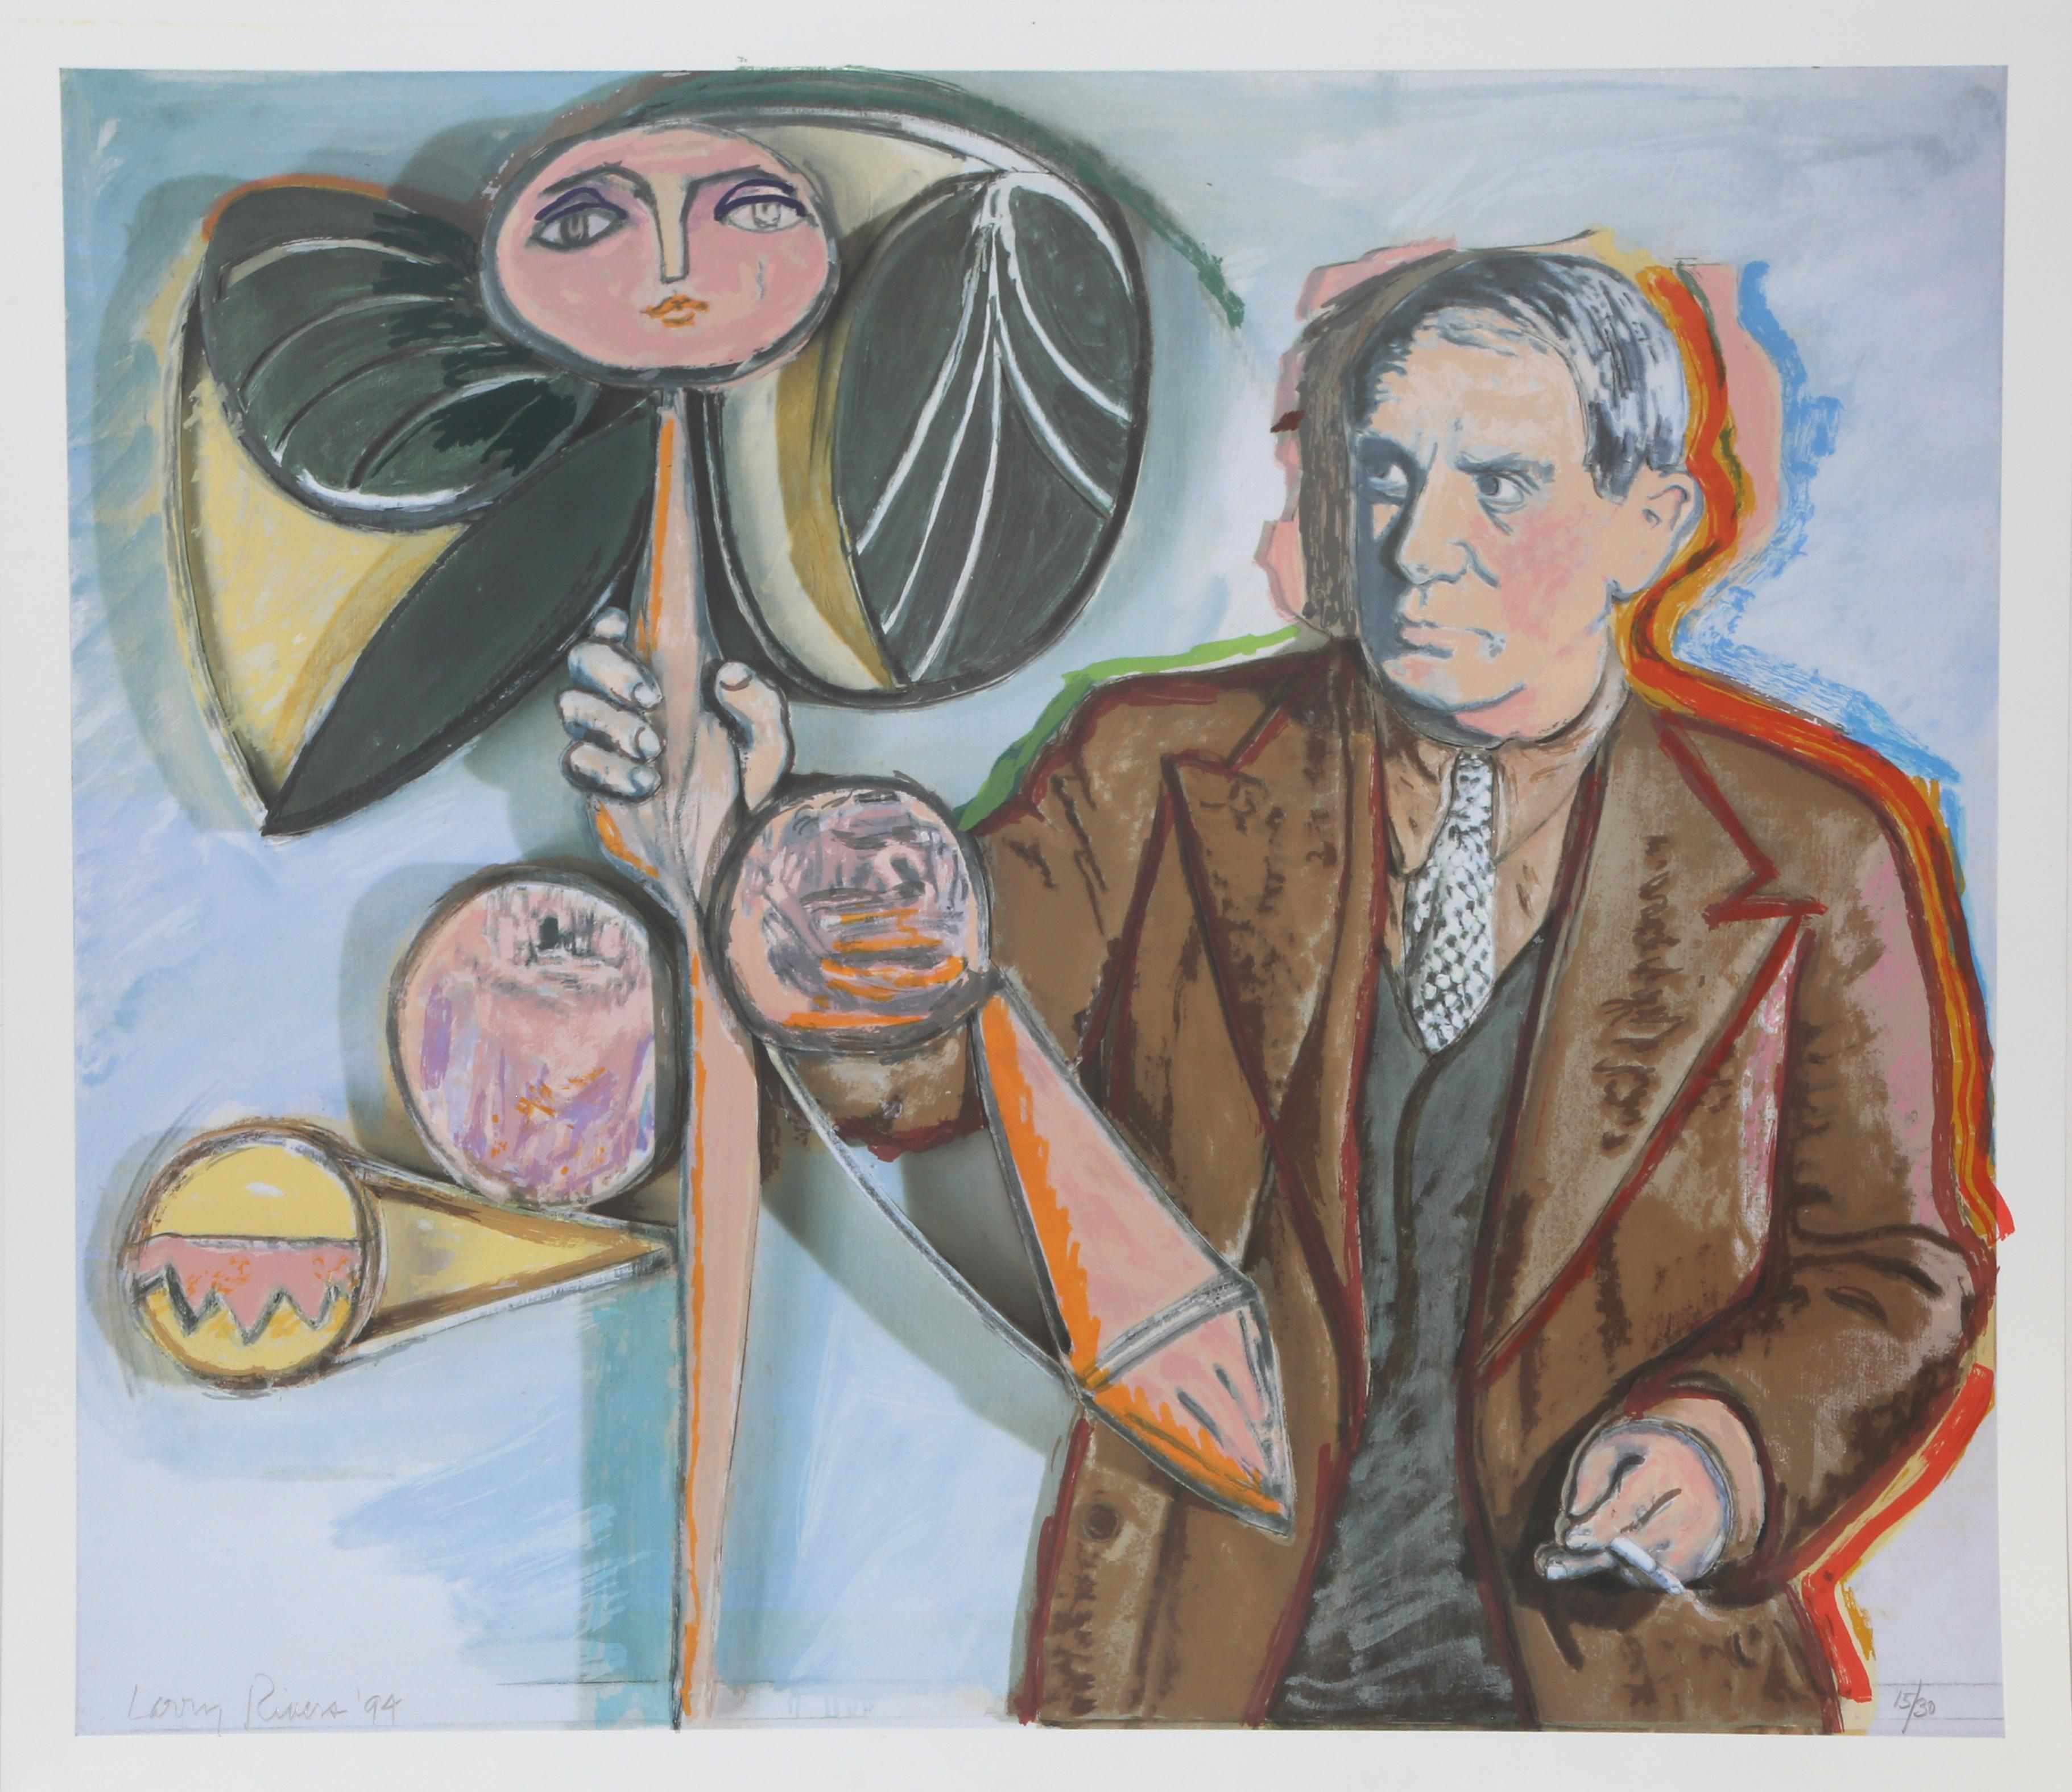 Homage to Pablo Picasso by Larry Rivers